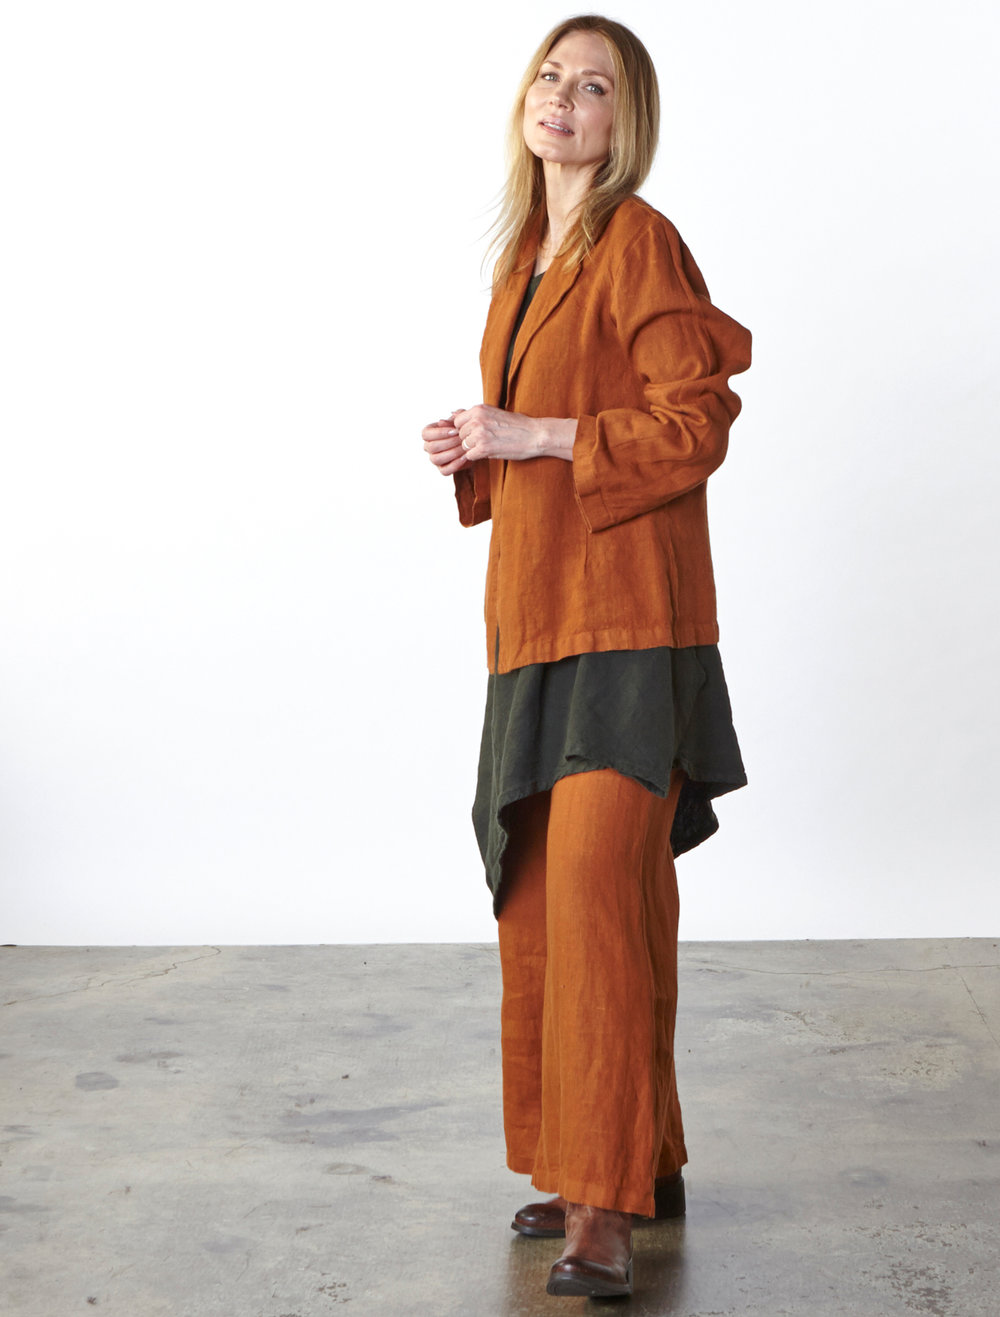 Marcel Jacket, Long Full Pant in Jemez, Nada Tunic in Huntress Heavy Linen